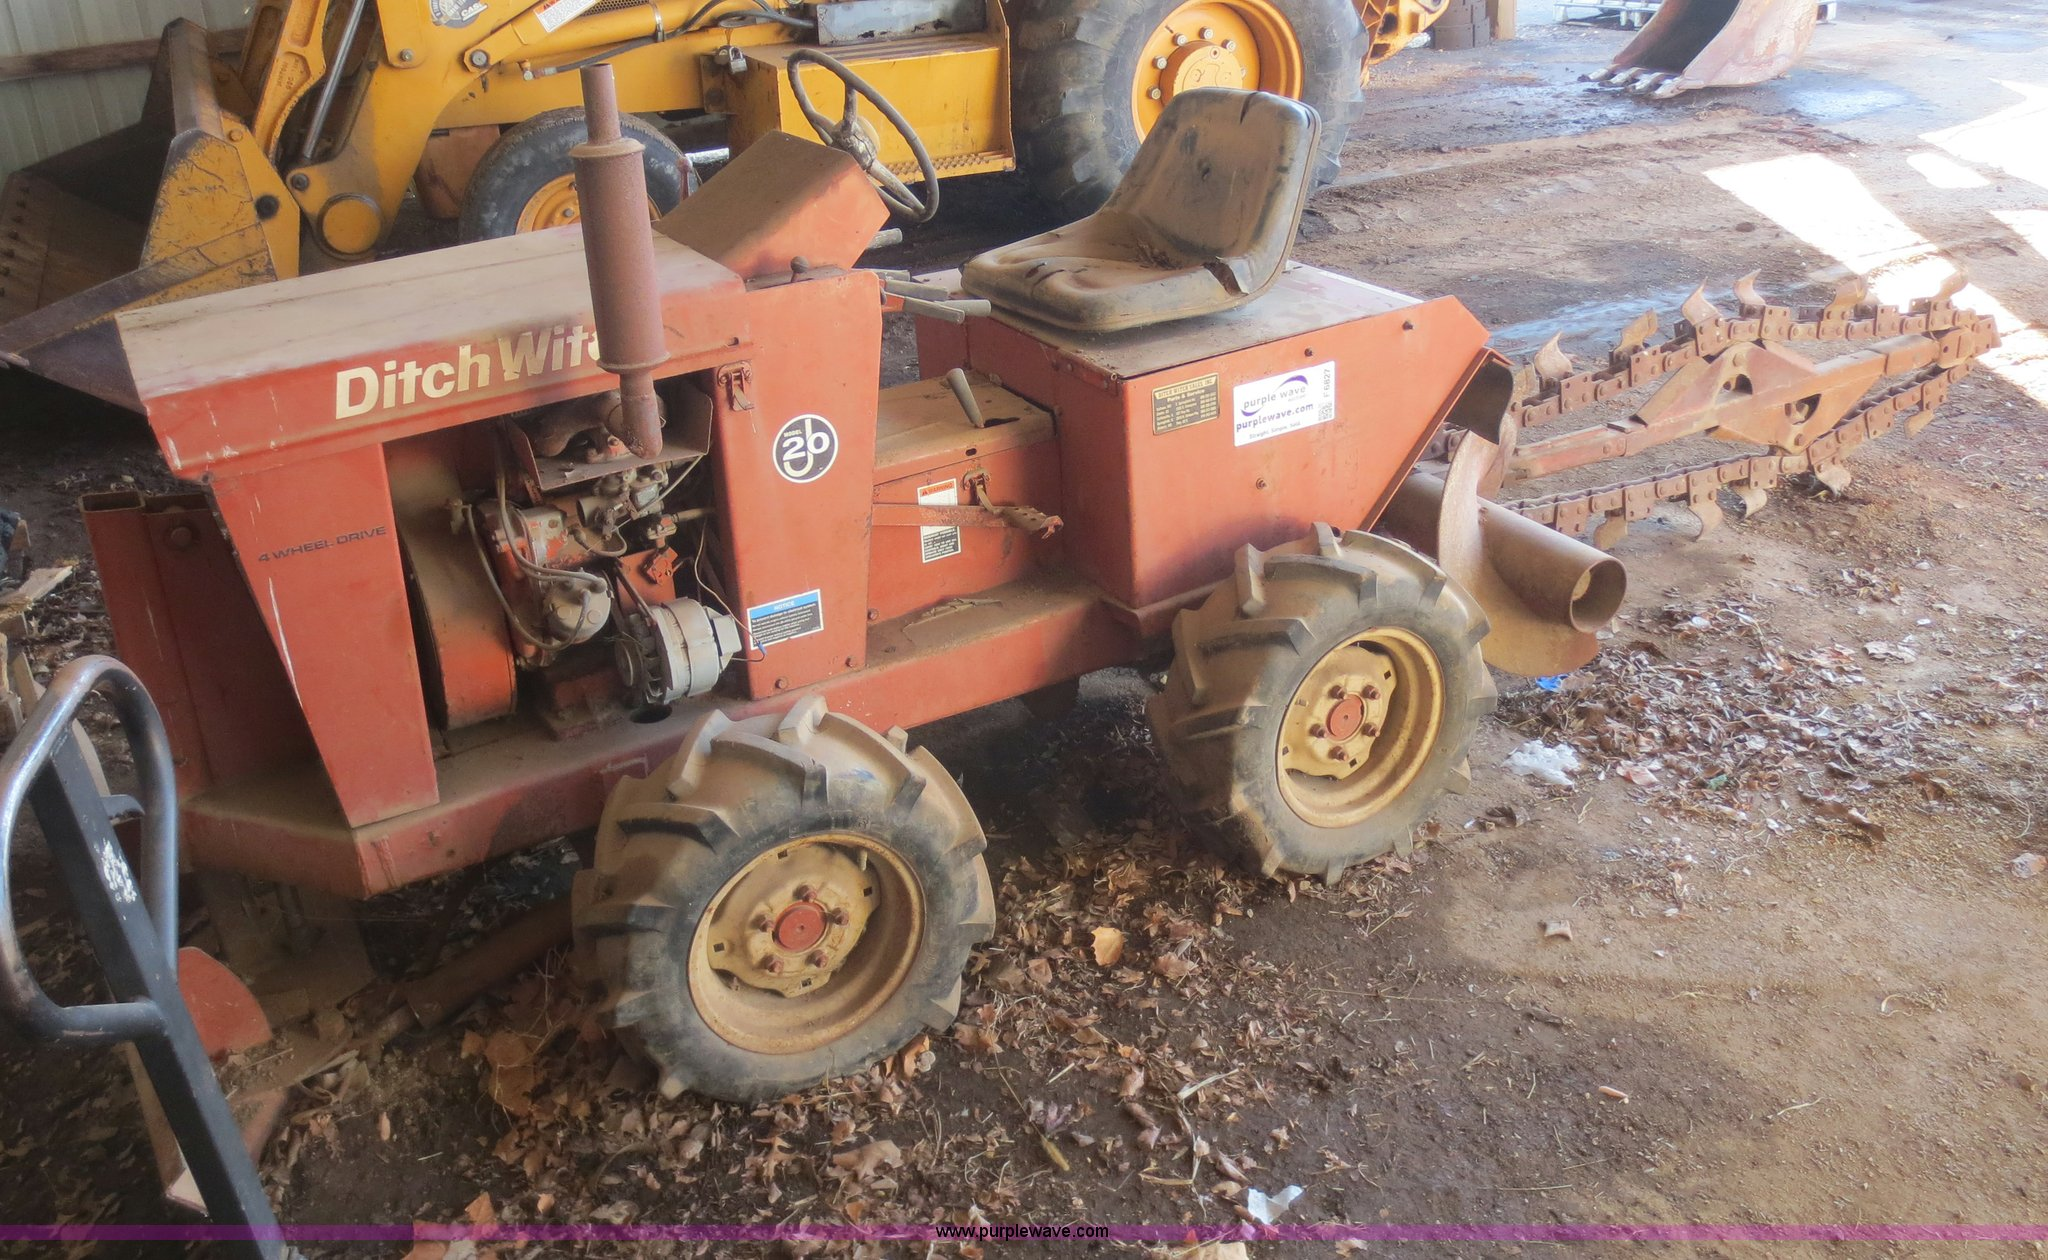 ditch witch j20 trencher item f6827 sold april 2 vehicl rh purplewave com 2310 Ditch Witch Belt Ditch Witch 2310 Trencher Backhoe